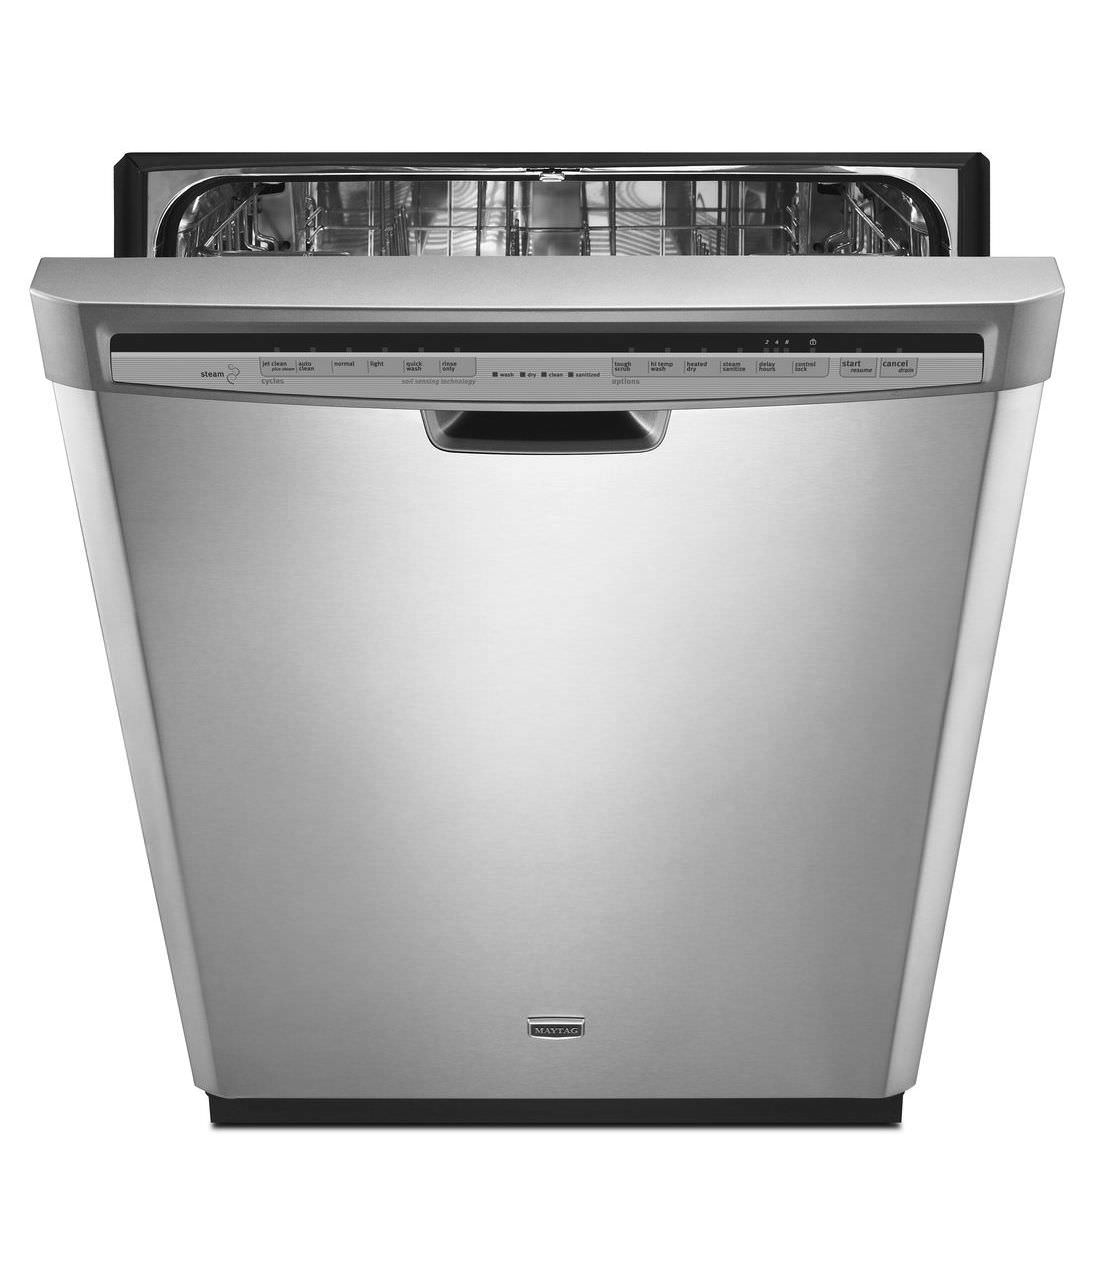 Review of Maytag JetClean Plus Front Control Dishwasher with ...